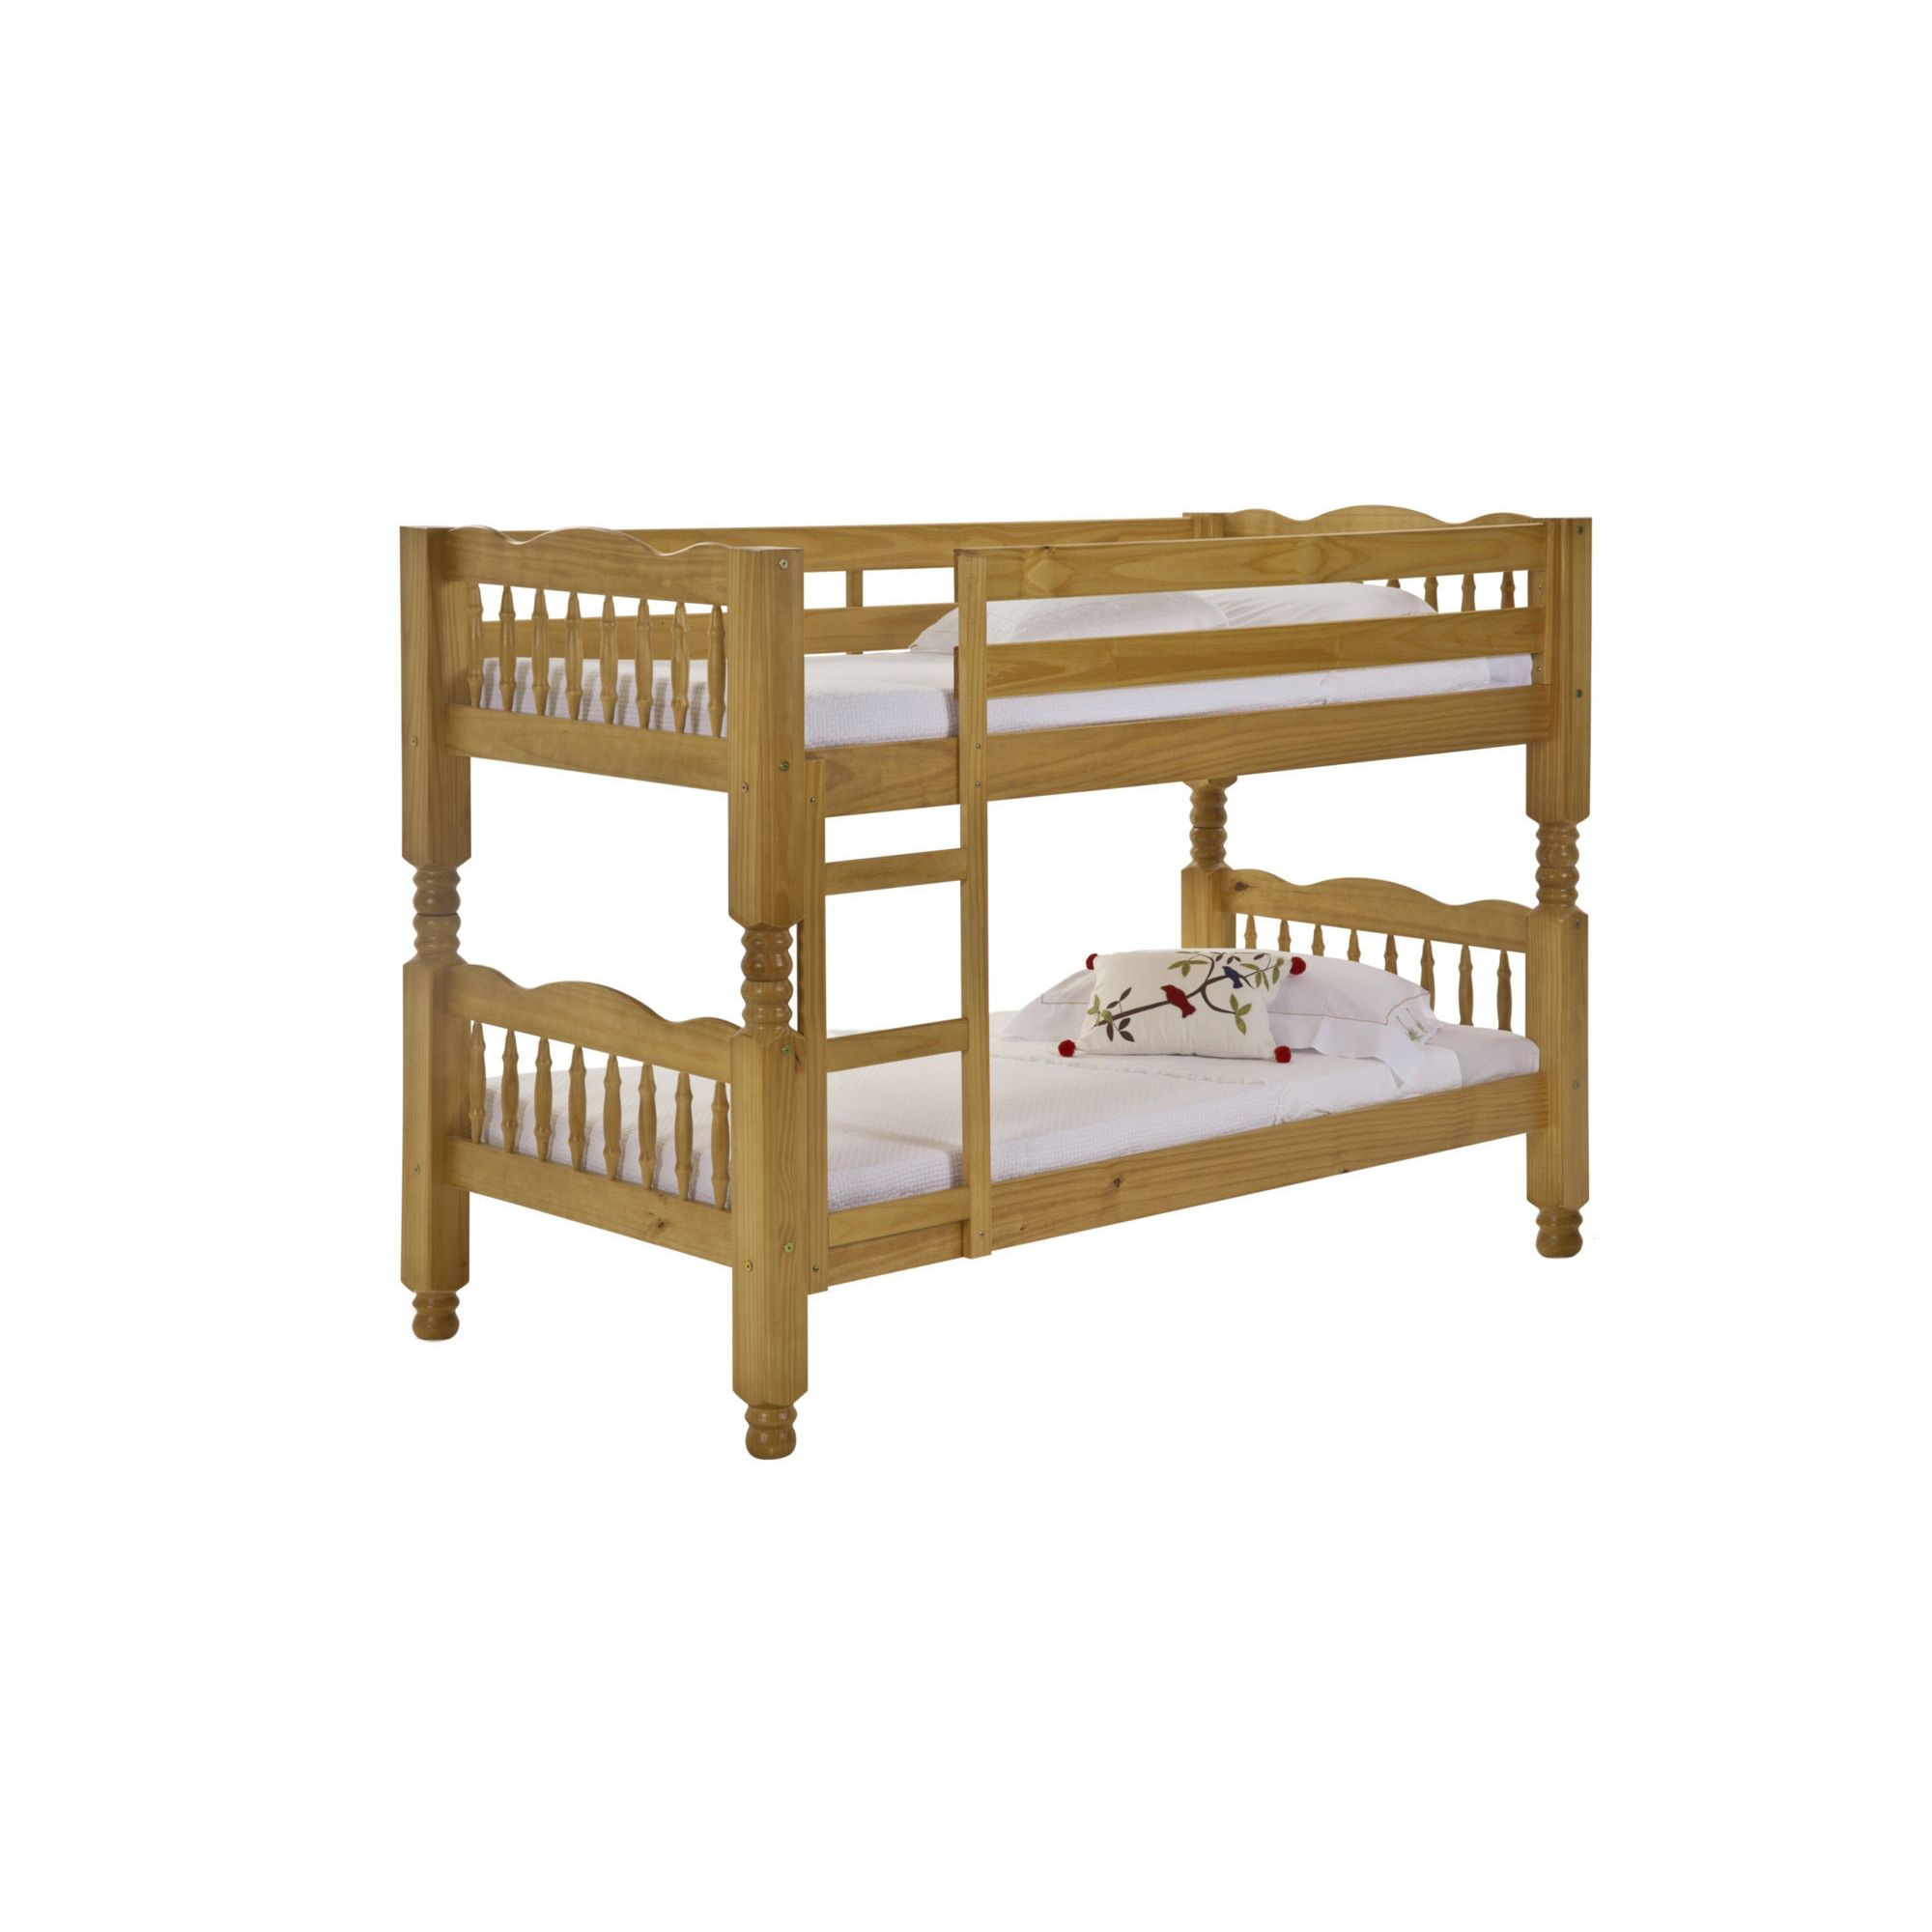 Verona Trieste Short Length Kids Bunk Bed at Tesco Direct